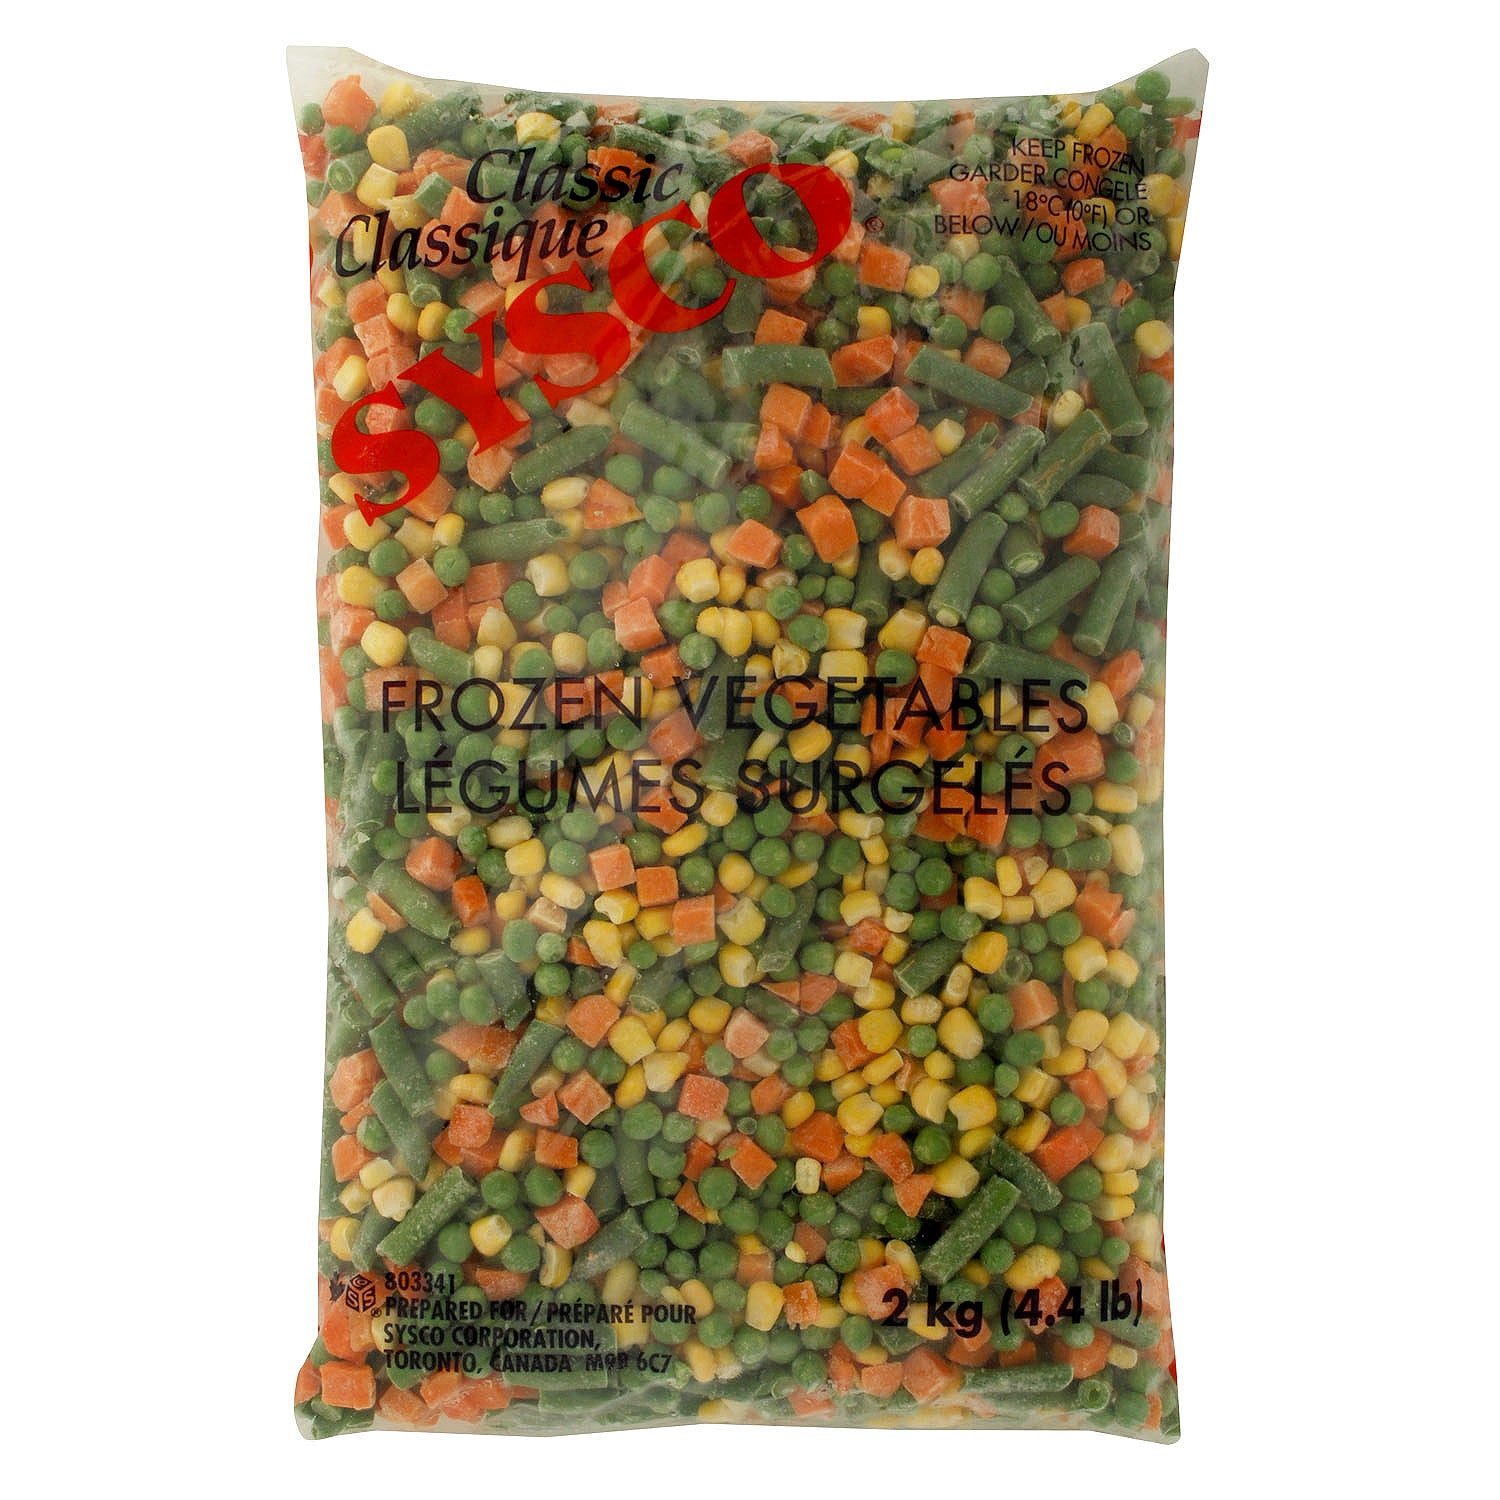 Sysco Classic Frozen Vegetable Mix 4 Way (Carrots/Corn/Peas/Green & Wax Beans) 2 kg - 6 Pack [$3.58/kg]